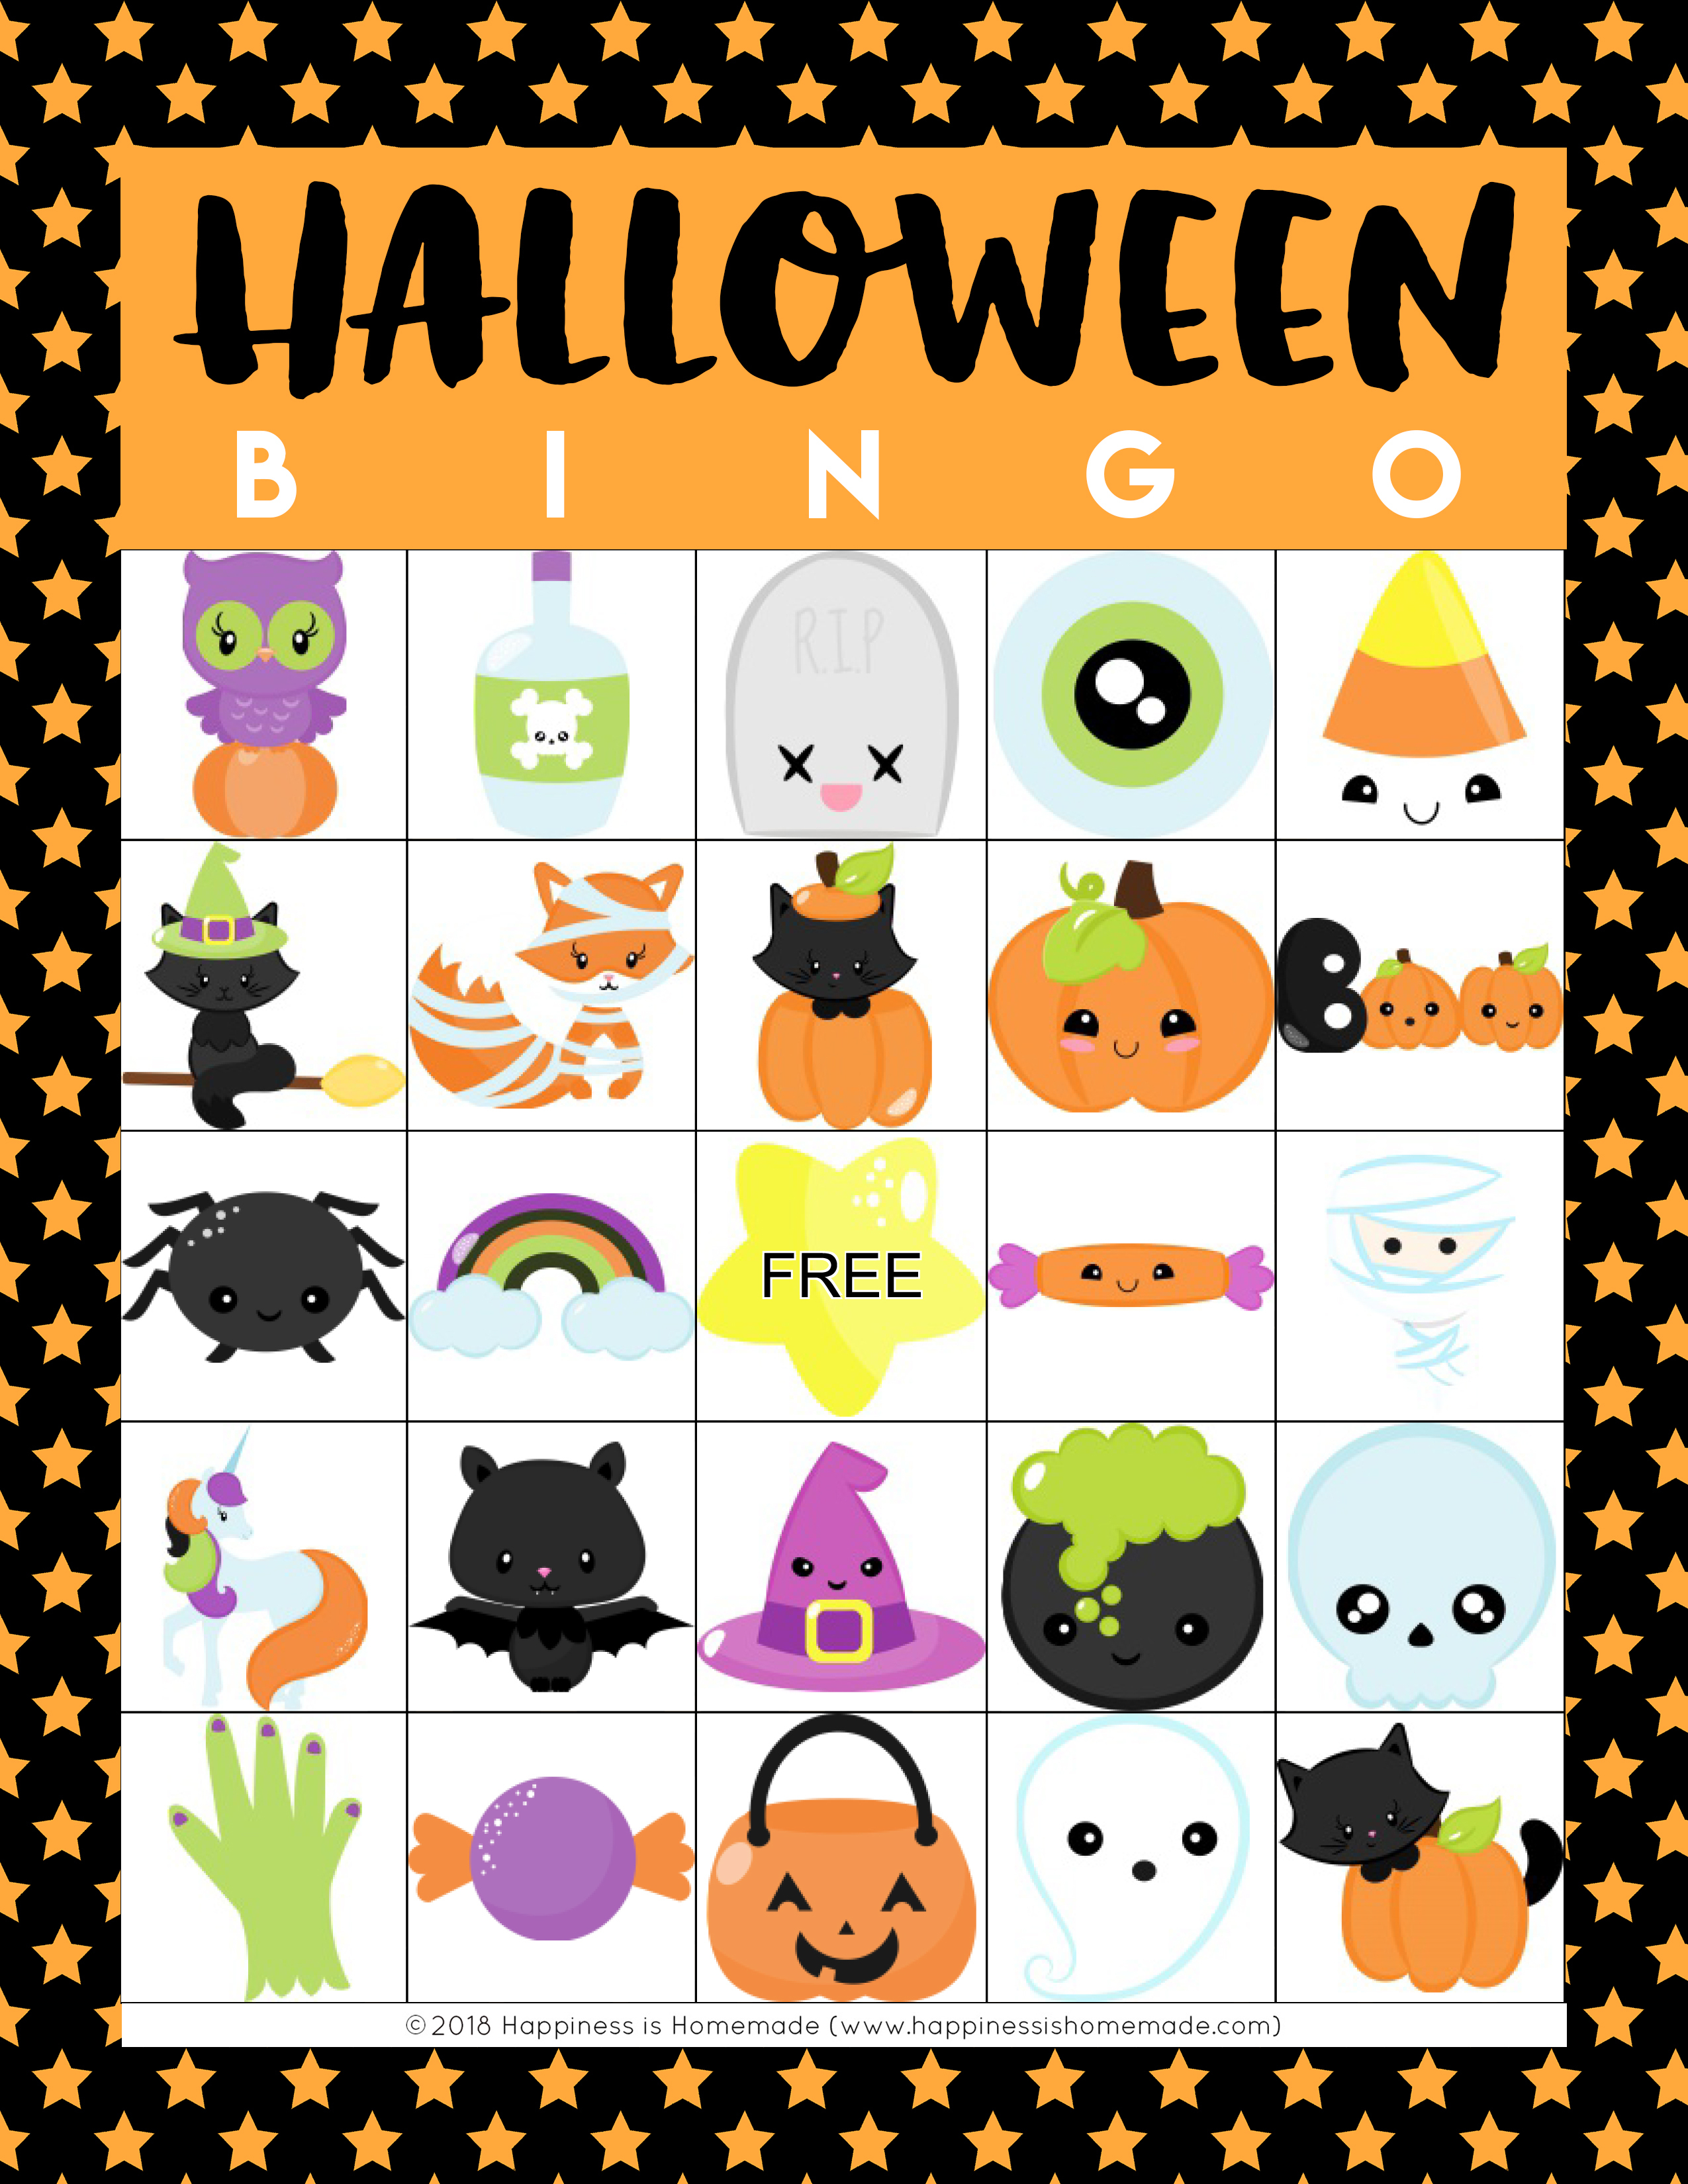 Printable Halloween Bingo Cards - Happiness Is Homemade - Free Printable Halloween Cards